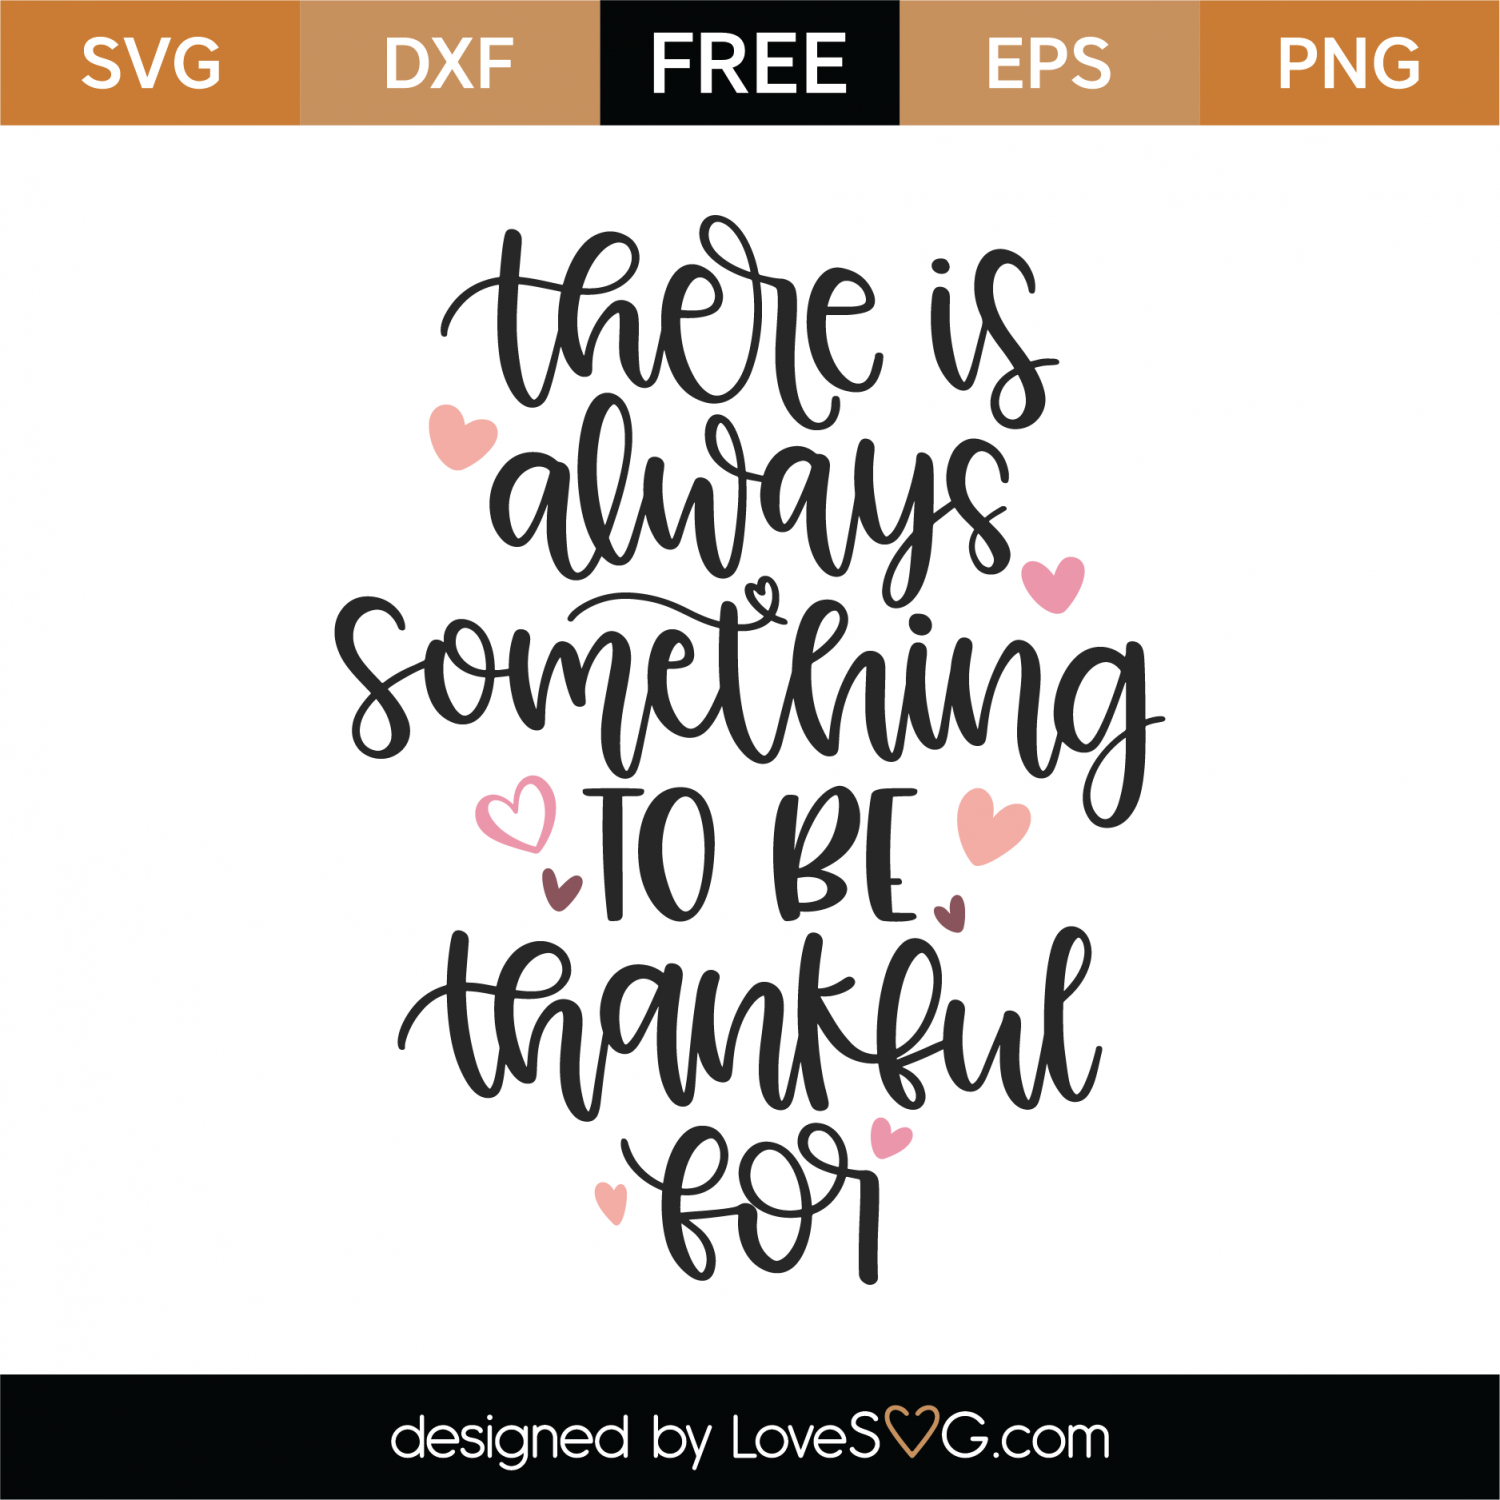 Free There Is Always Something To Be Thankful For Svg Cut File Lovesvg Com